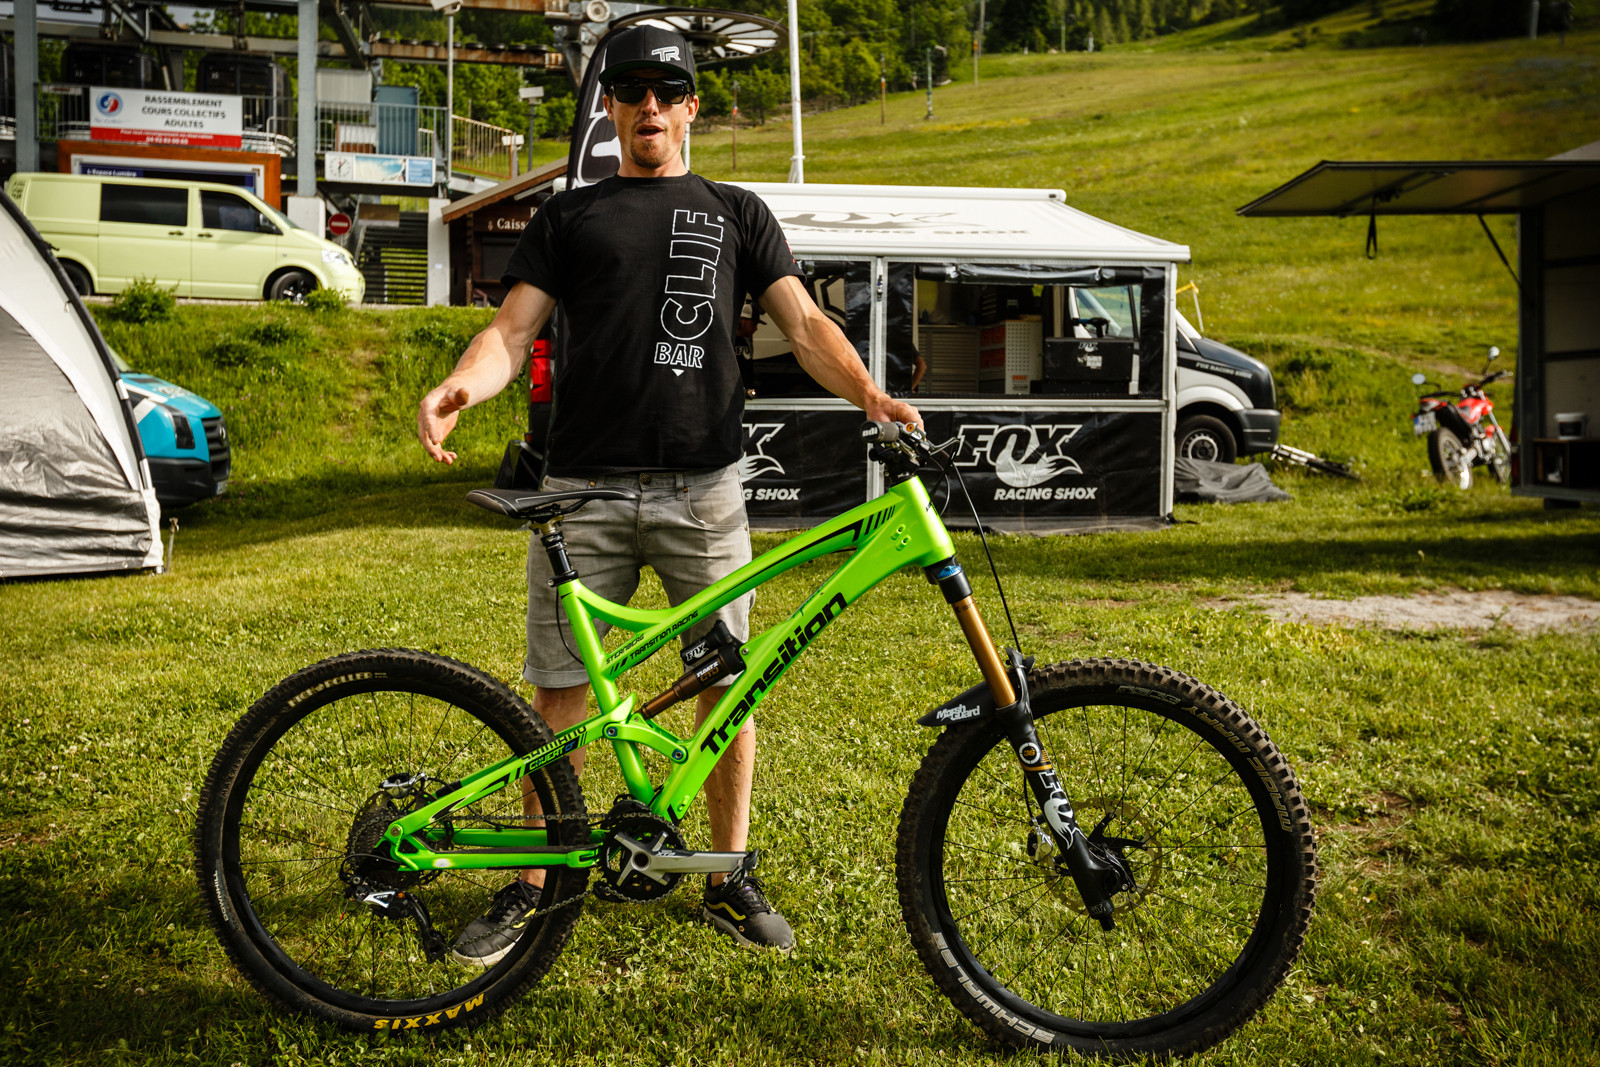 Lars Sternberg with his Transition Covert Carbon at Val d'Allos Enduro World Series - Pit Bits: Enduro World Series Val d'Allos, France - Mountain Biking Pictures - Vital MTB